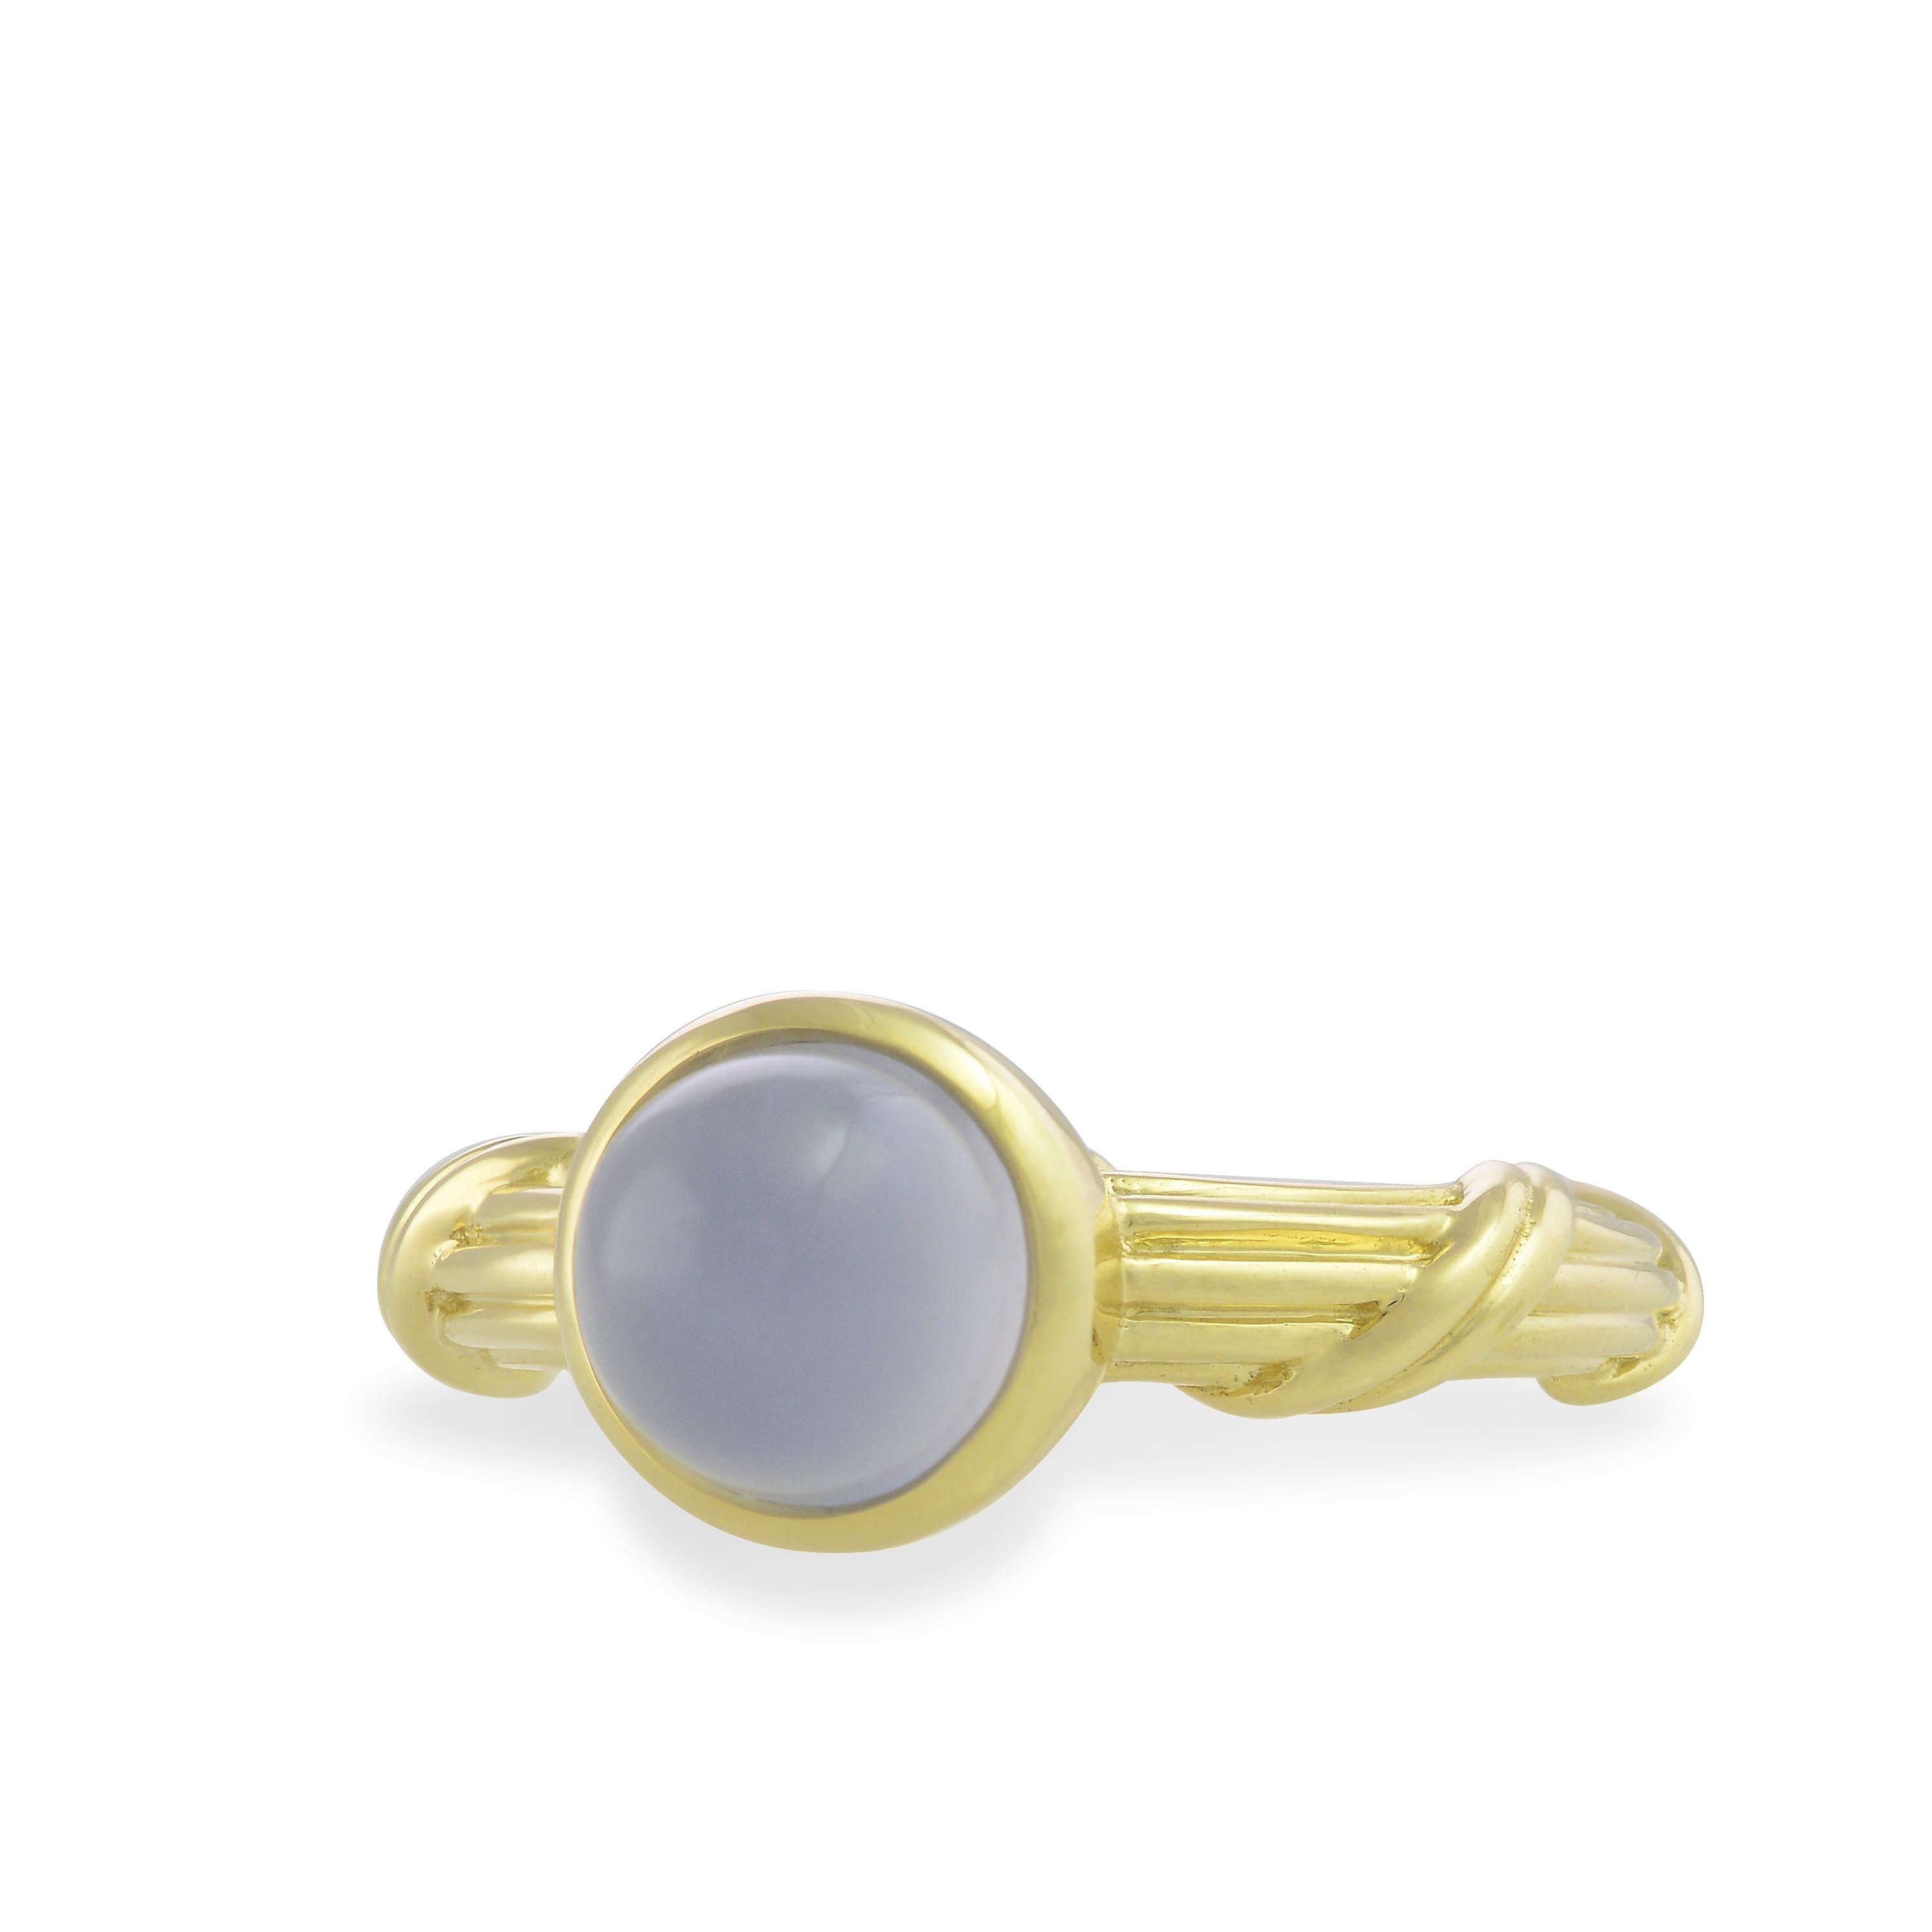 Chalcedony Bezel Set Cabochon Ring in 18K yellow gold